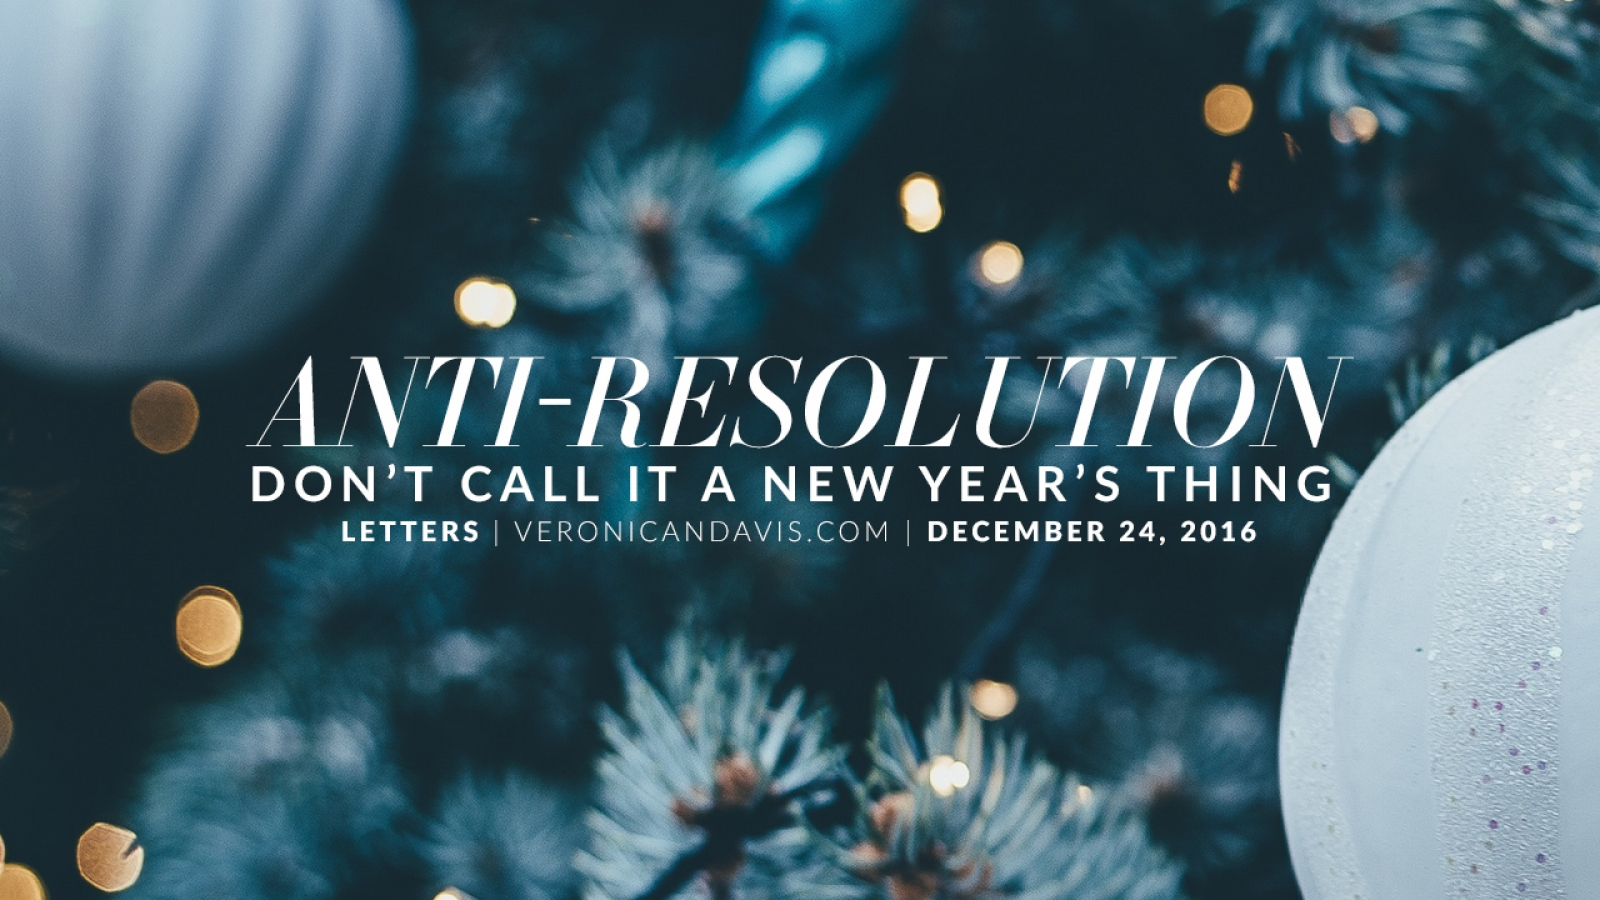 Anti-Resolution Don't Call It a New Year's Thing   Veronica N. Davis Blog